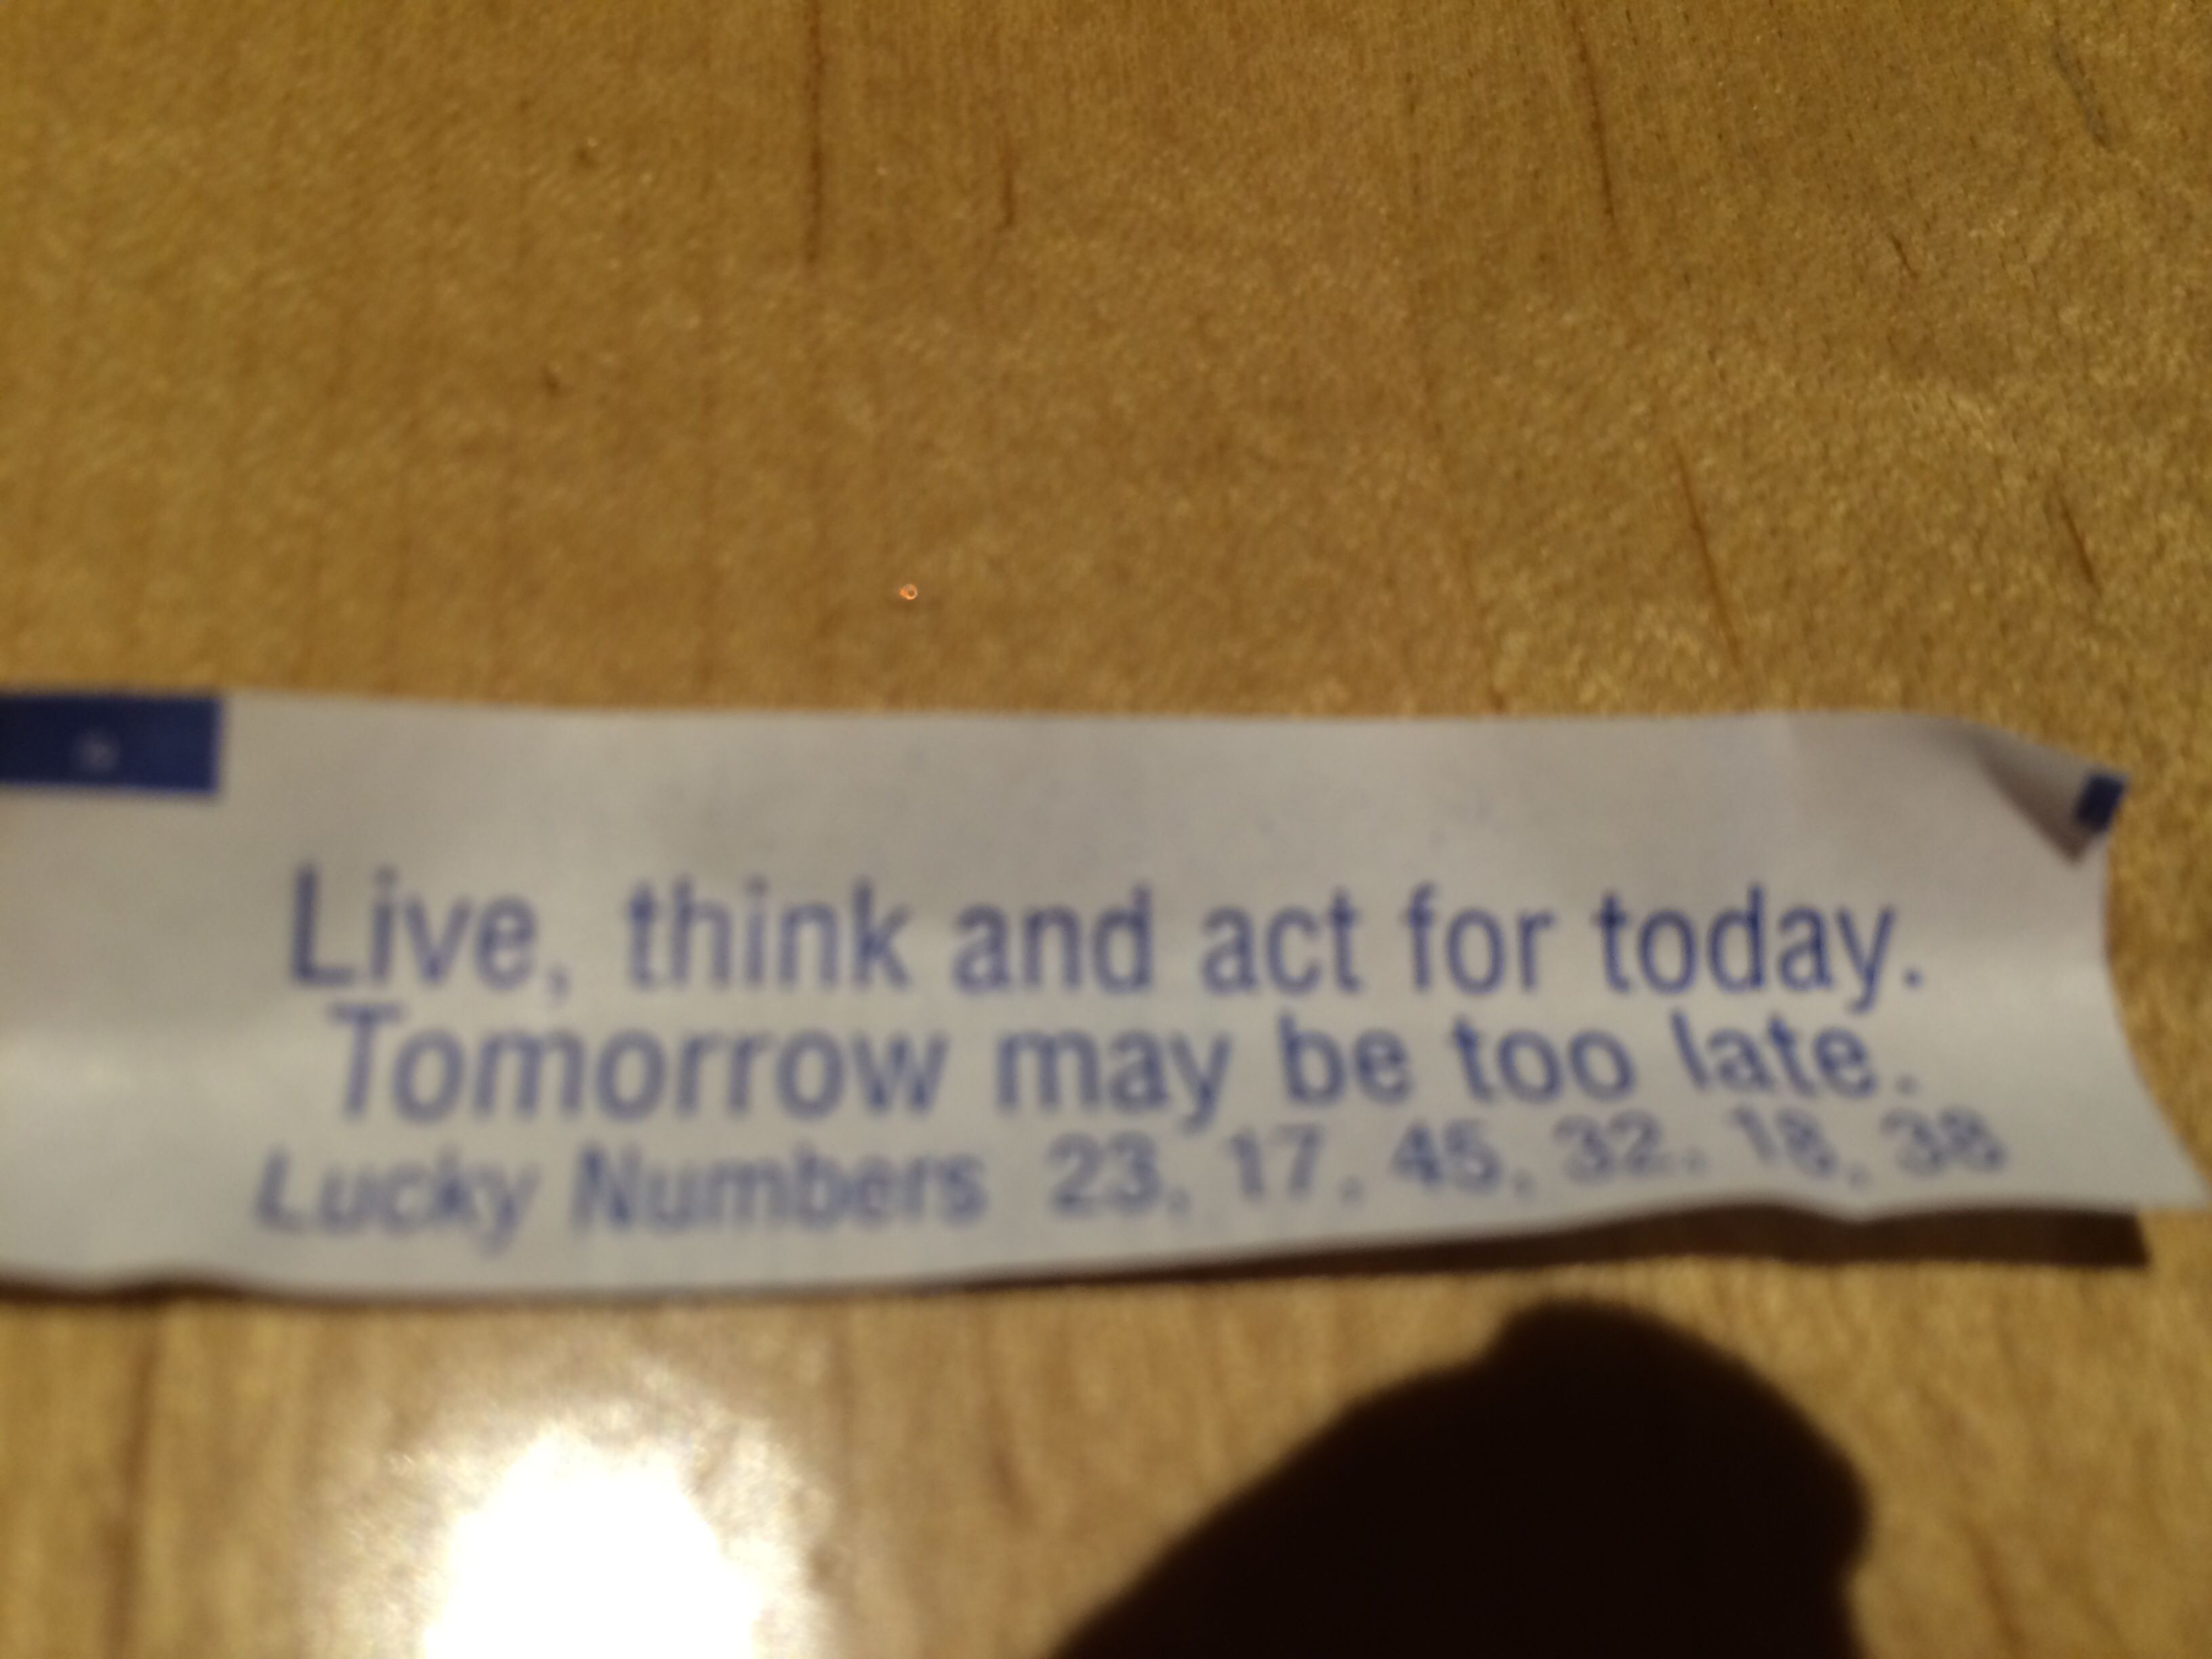 Live, think, and act for today. Tomorrow may be too late.